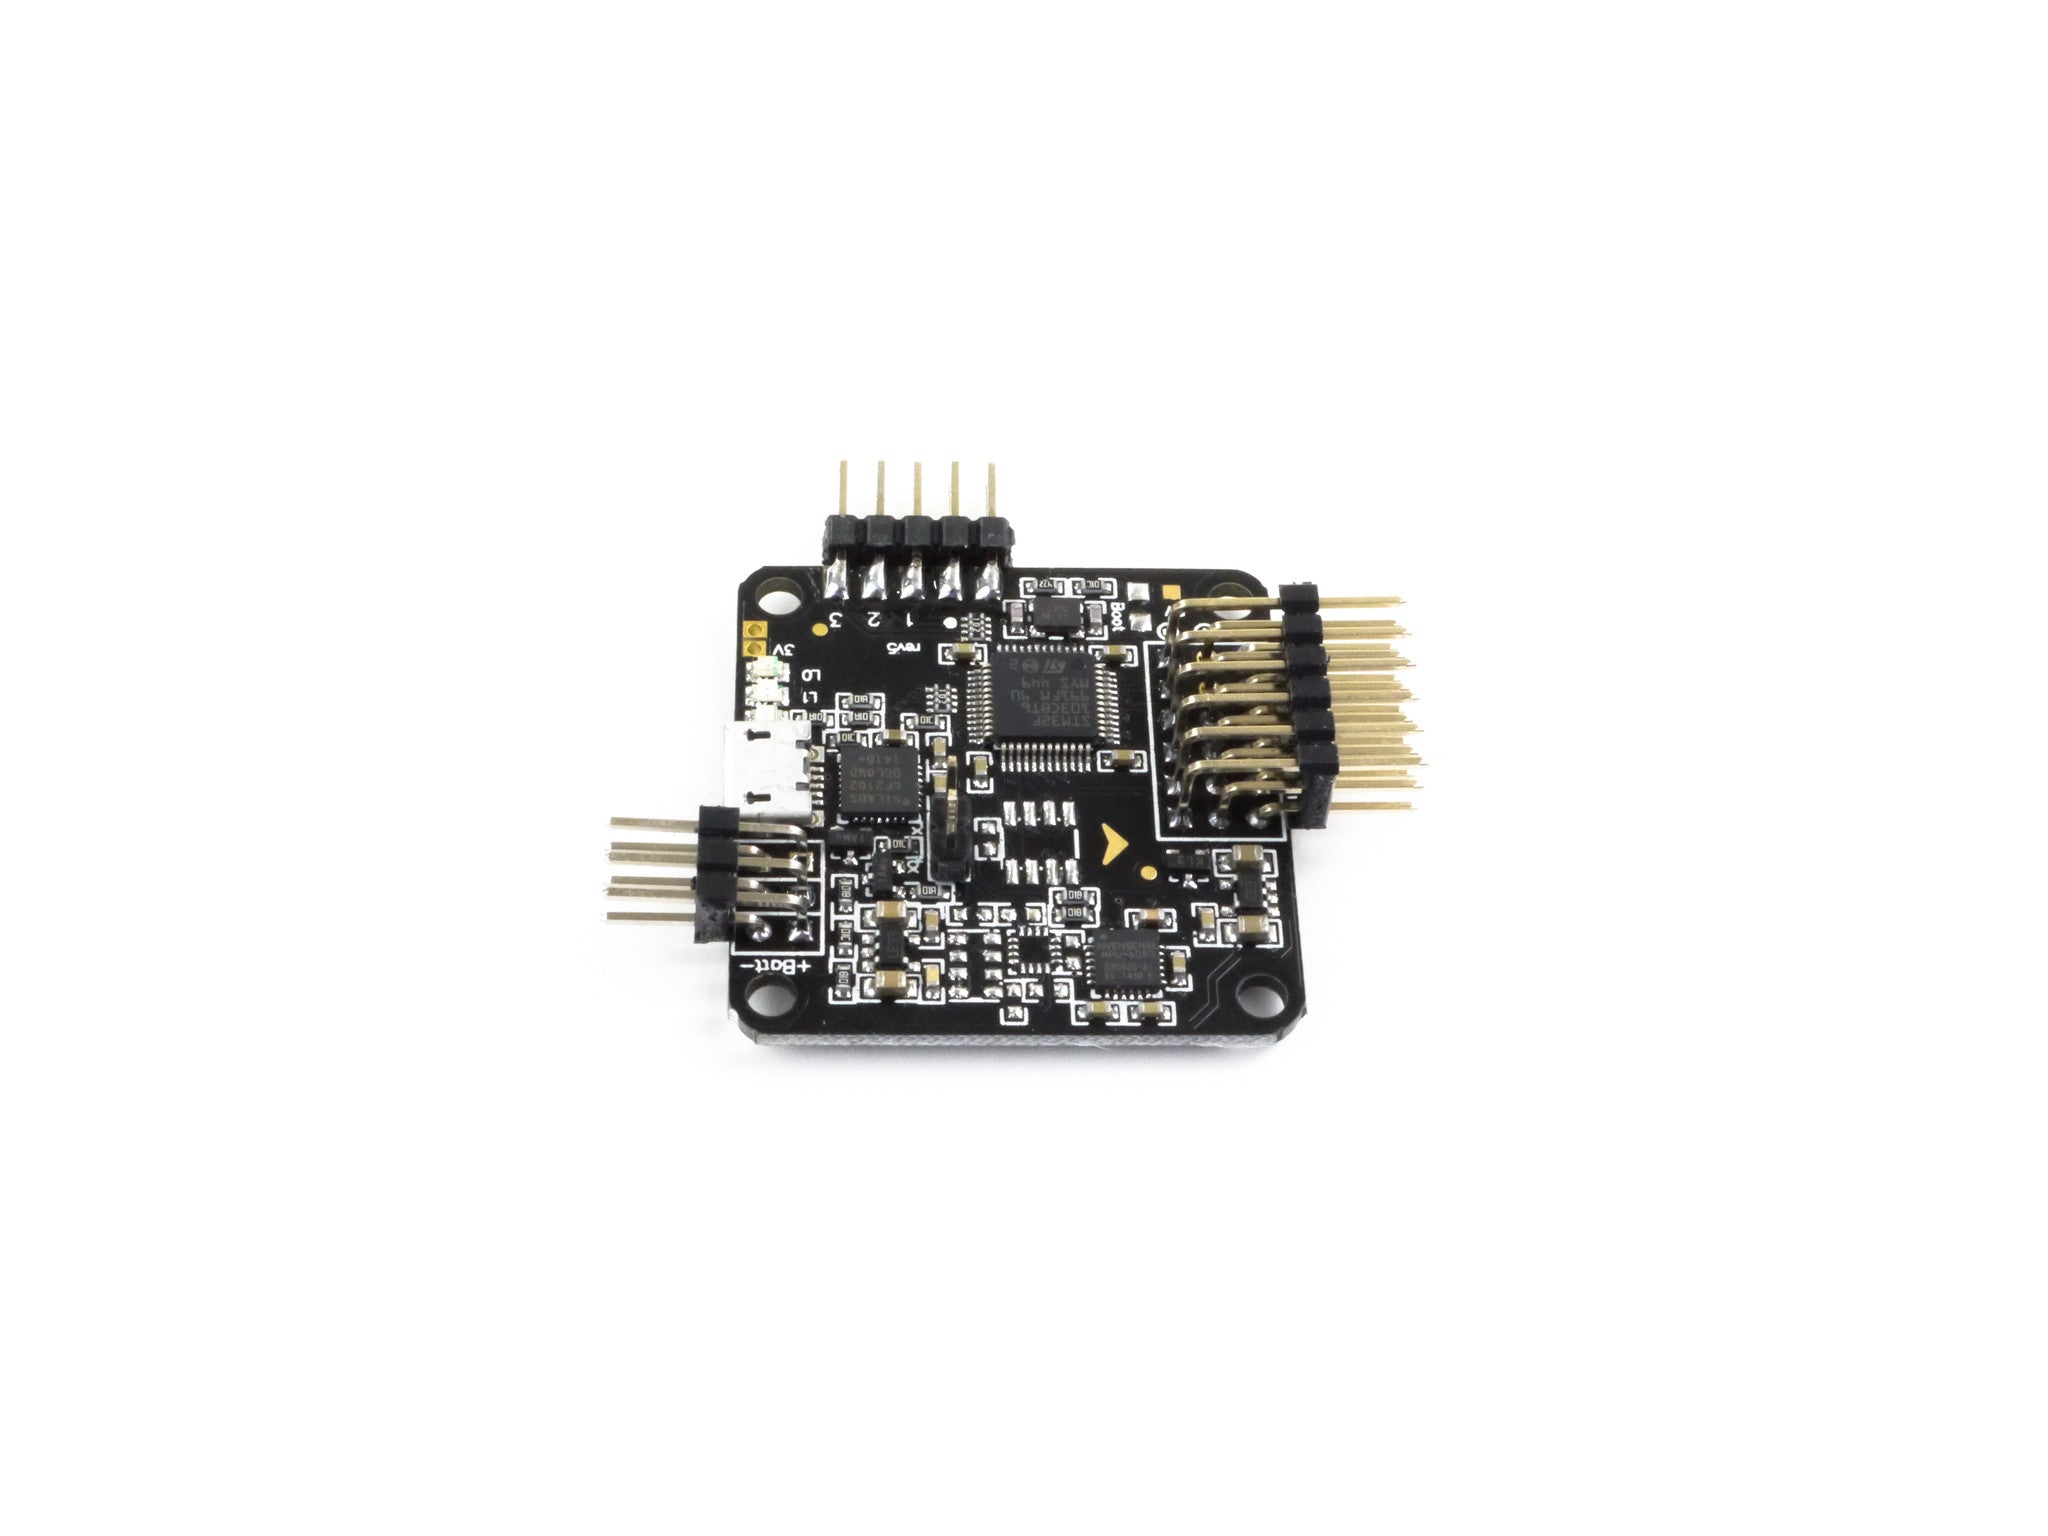 Buy Acro Pre-Soldered Naze32 - MINI QUAD BROS Naze Afro Wiring Harness Racing on